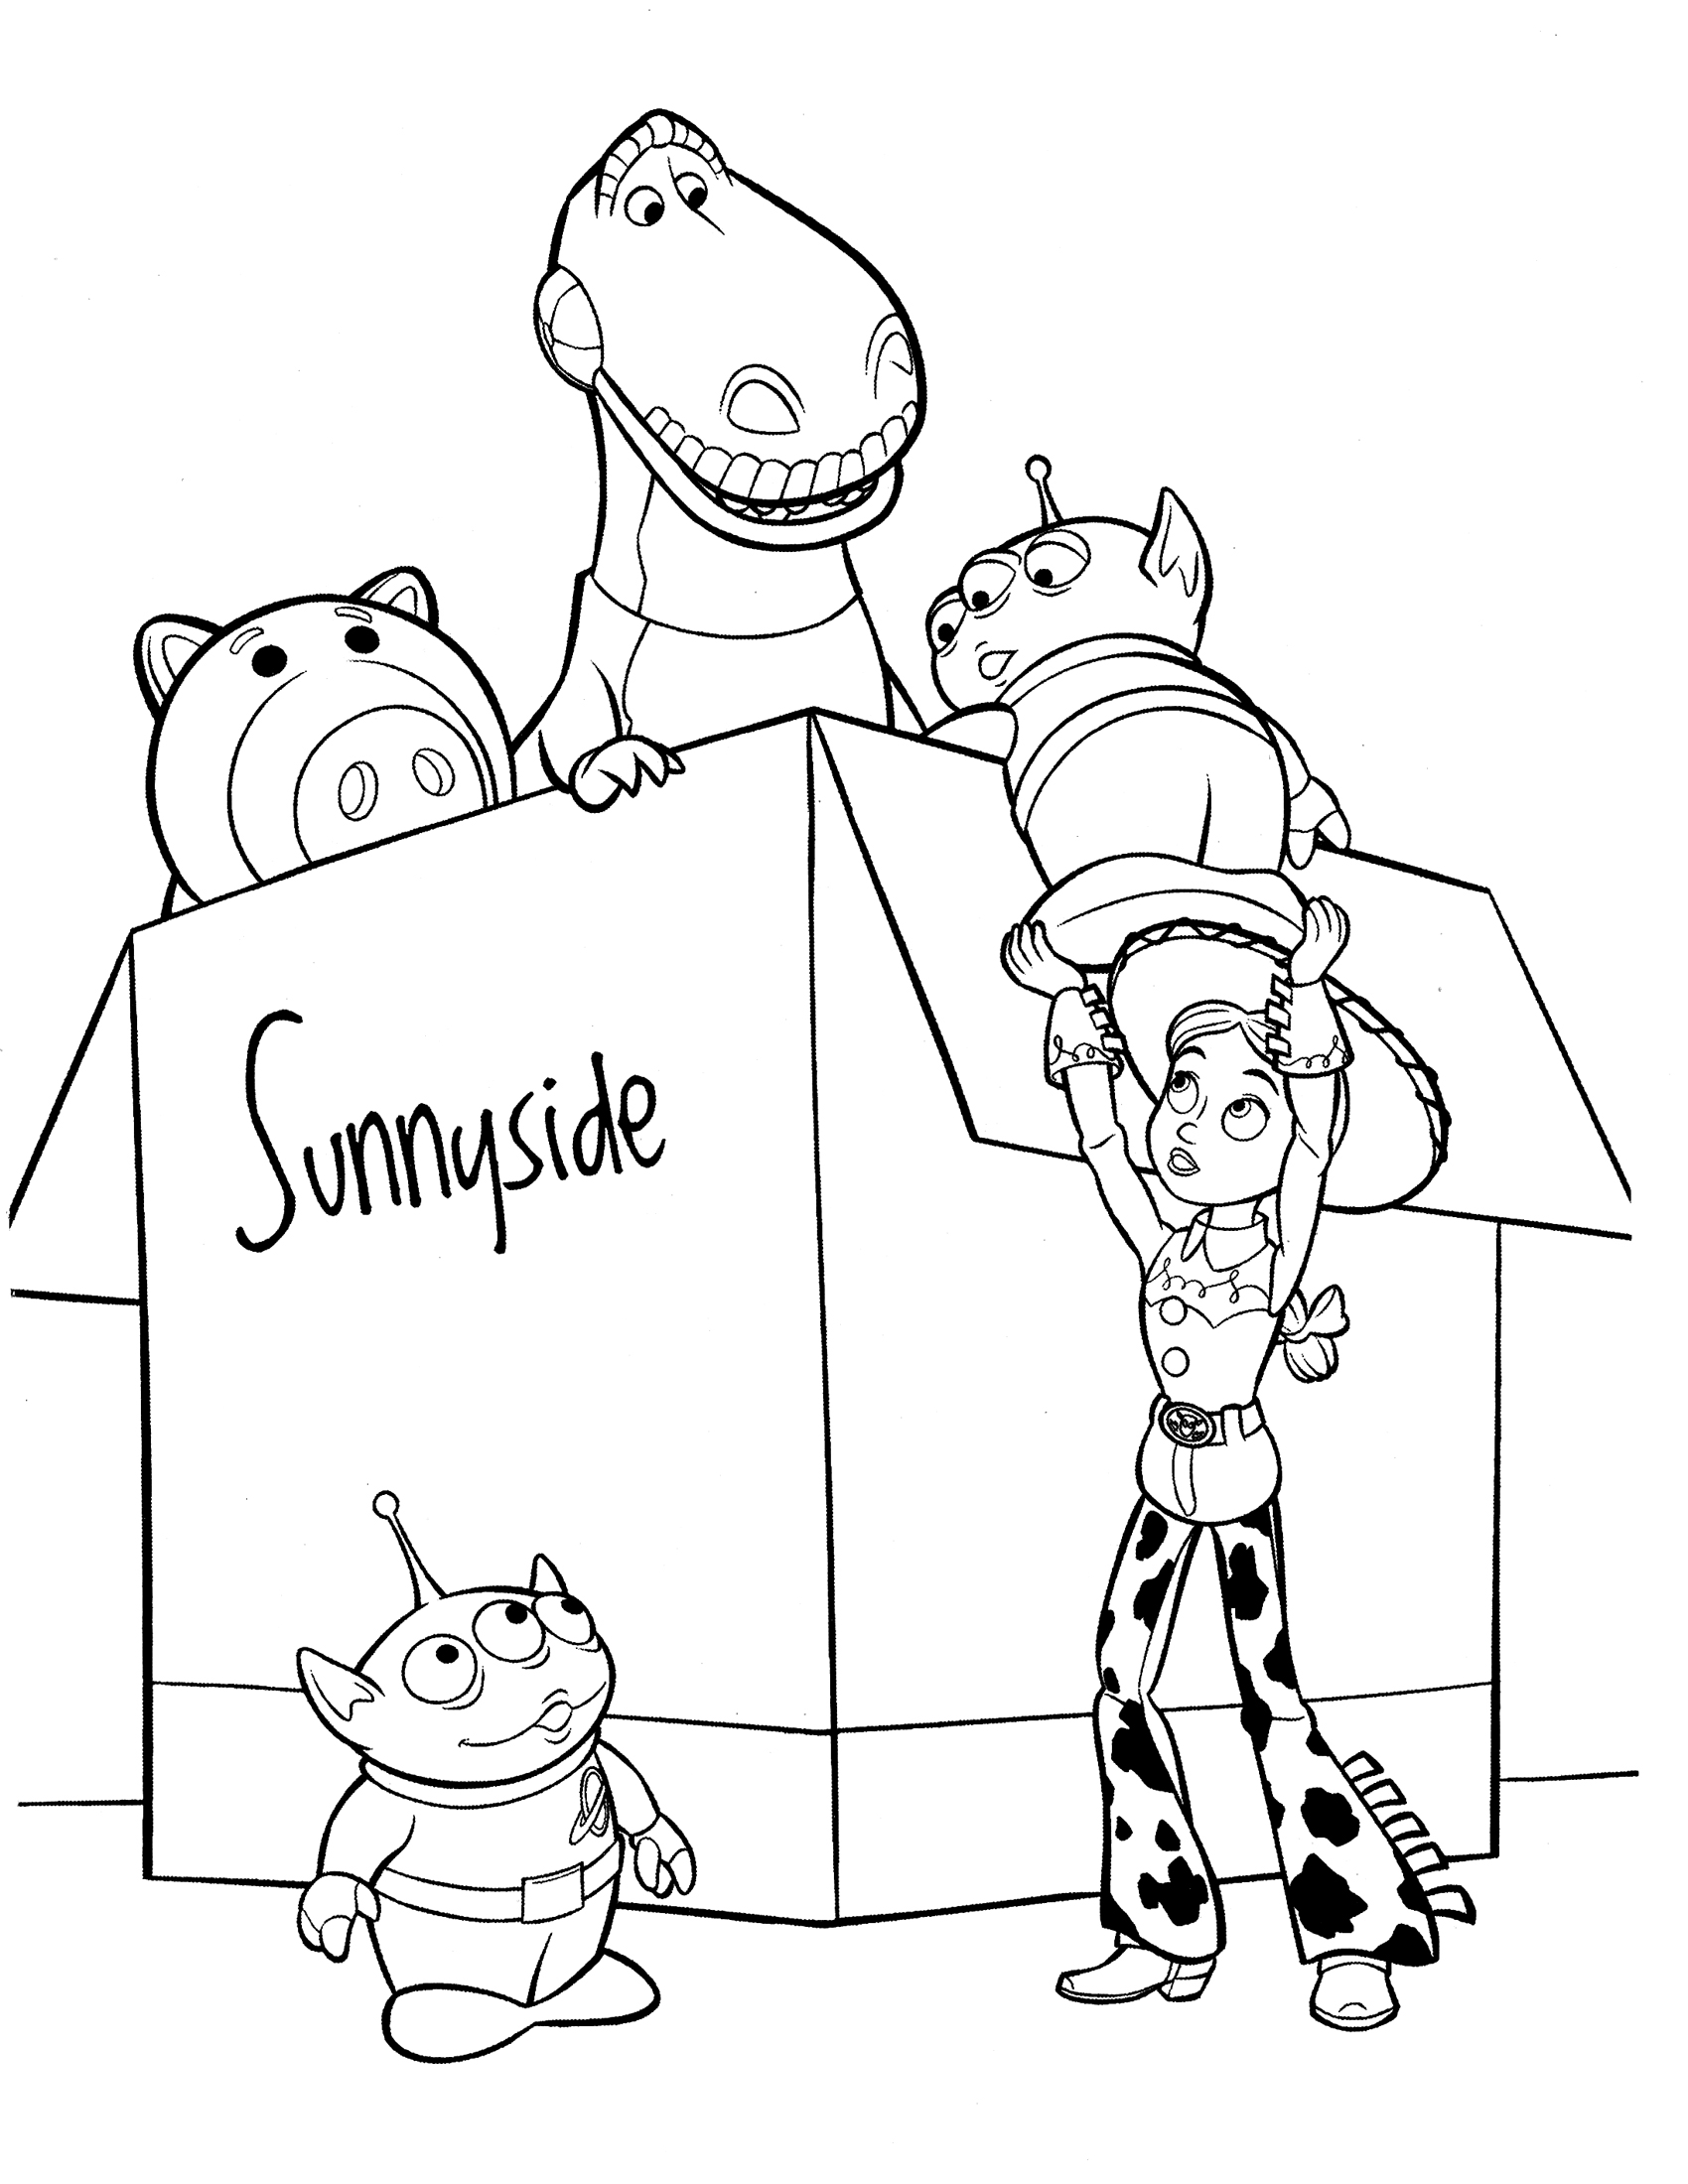 coloring toy story 4 toy story 4 coloring pages best coloring pages for kids coloring toy story 4